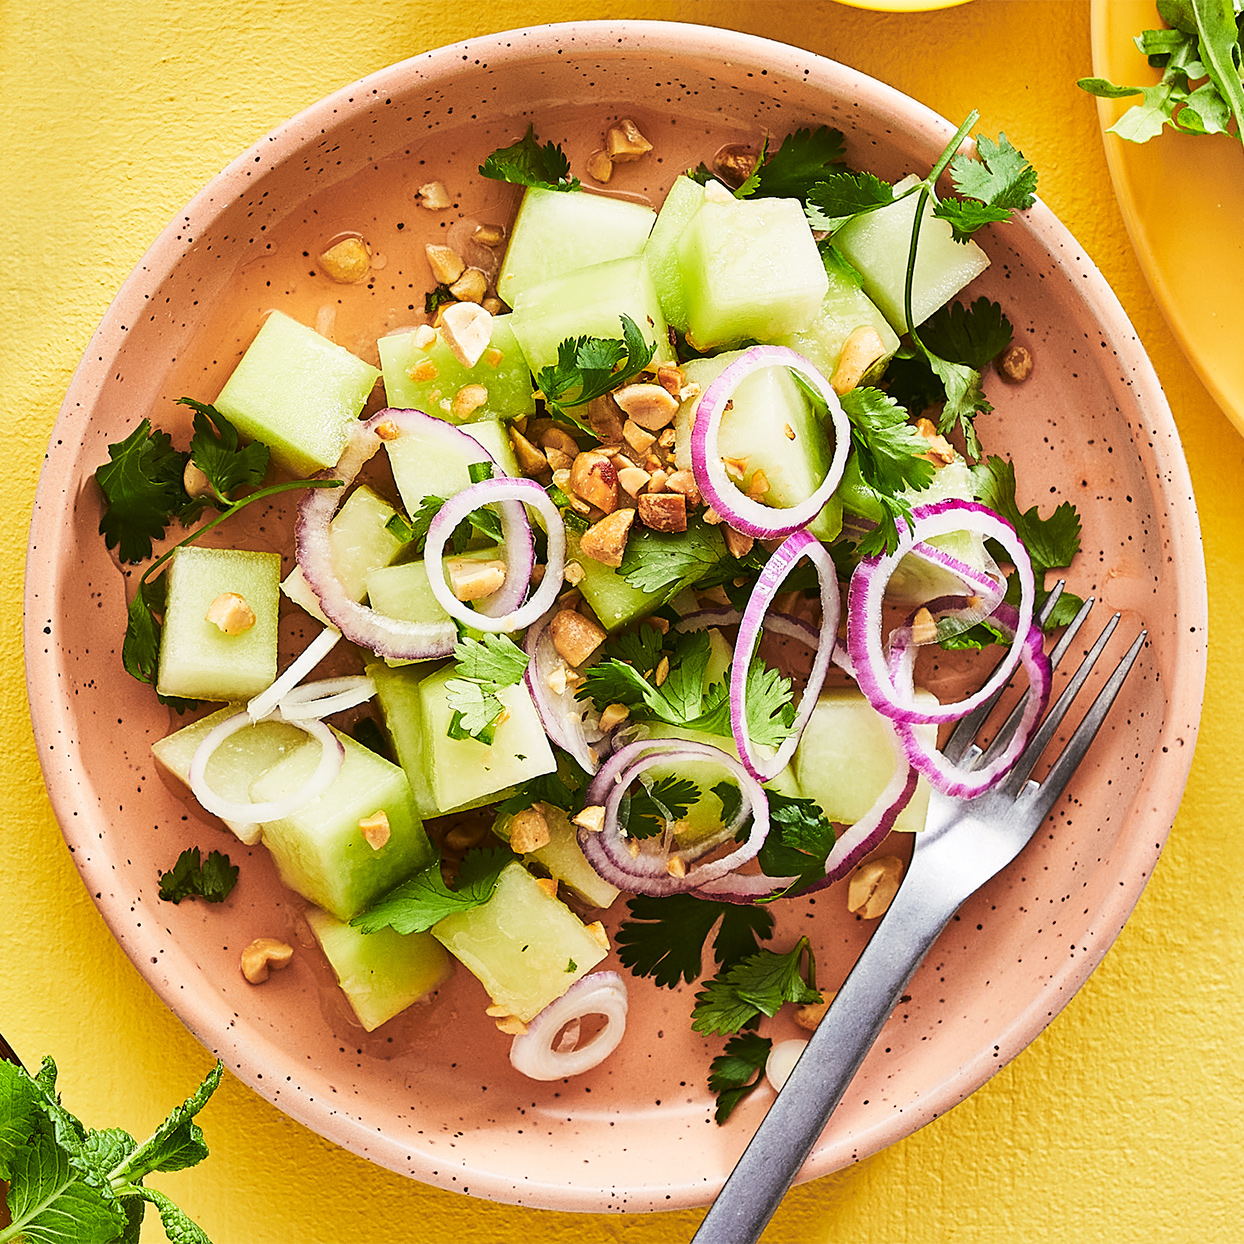 Spicy Thai Melon Salad Trusted Brands